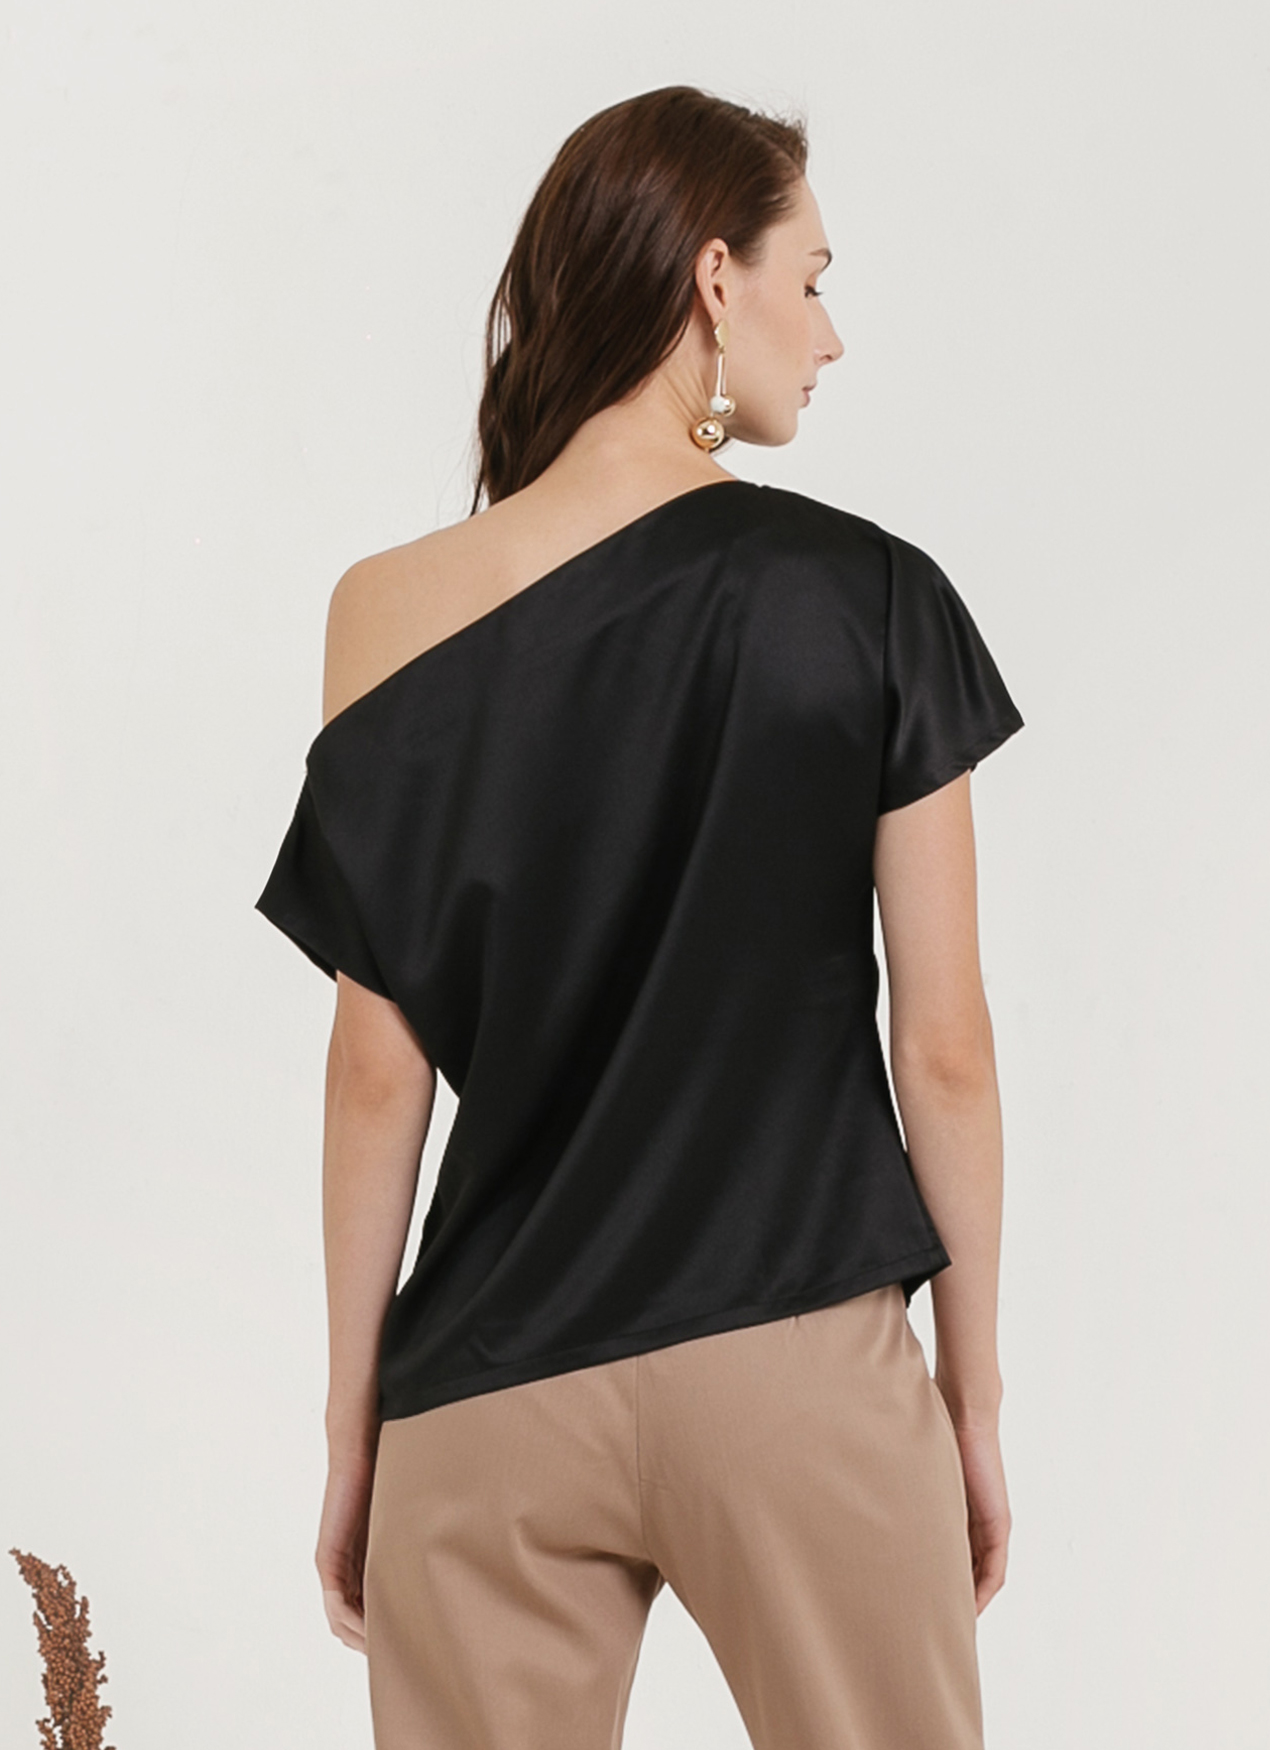 CLOTH INC Sabina One Shoulder Top - Black